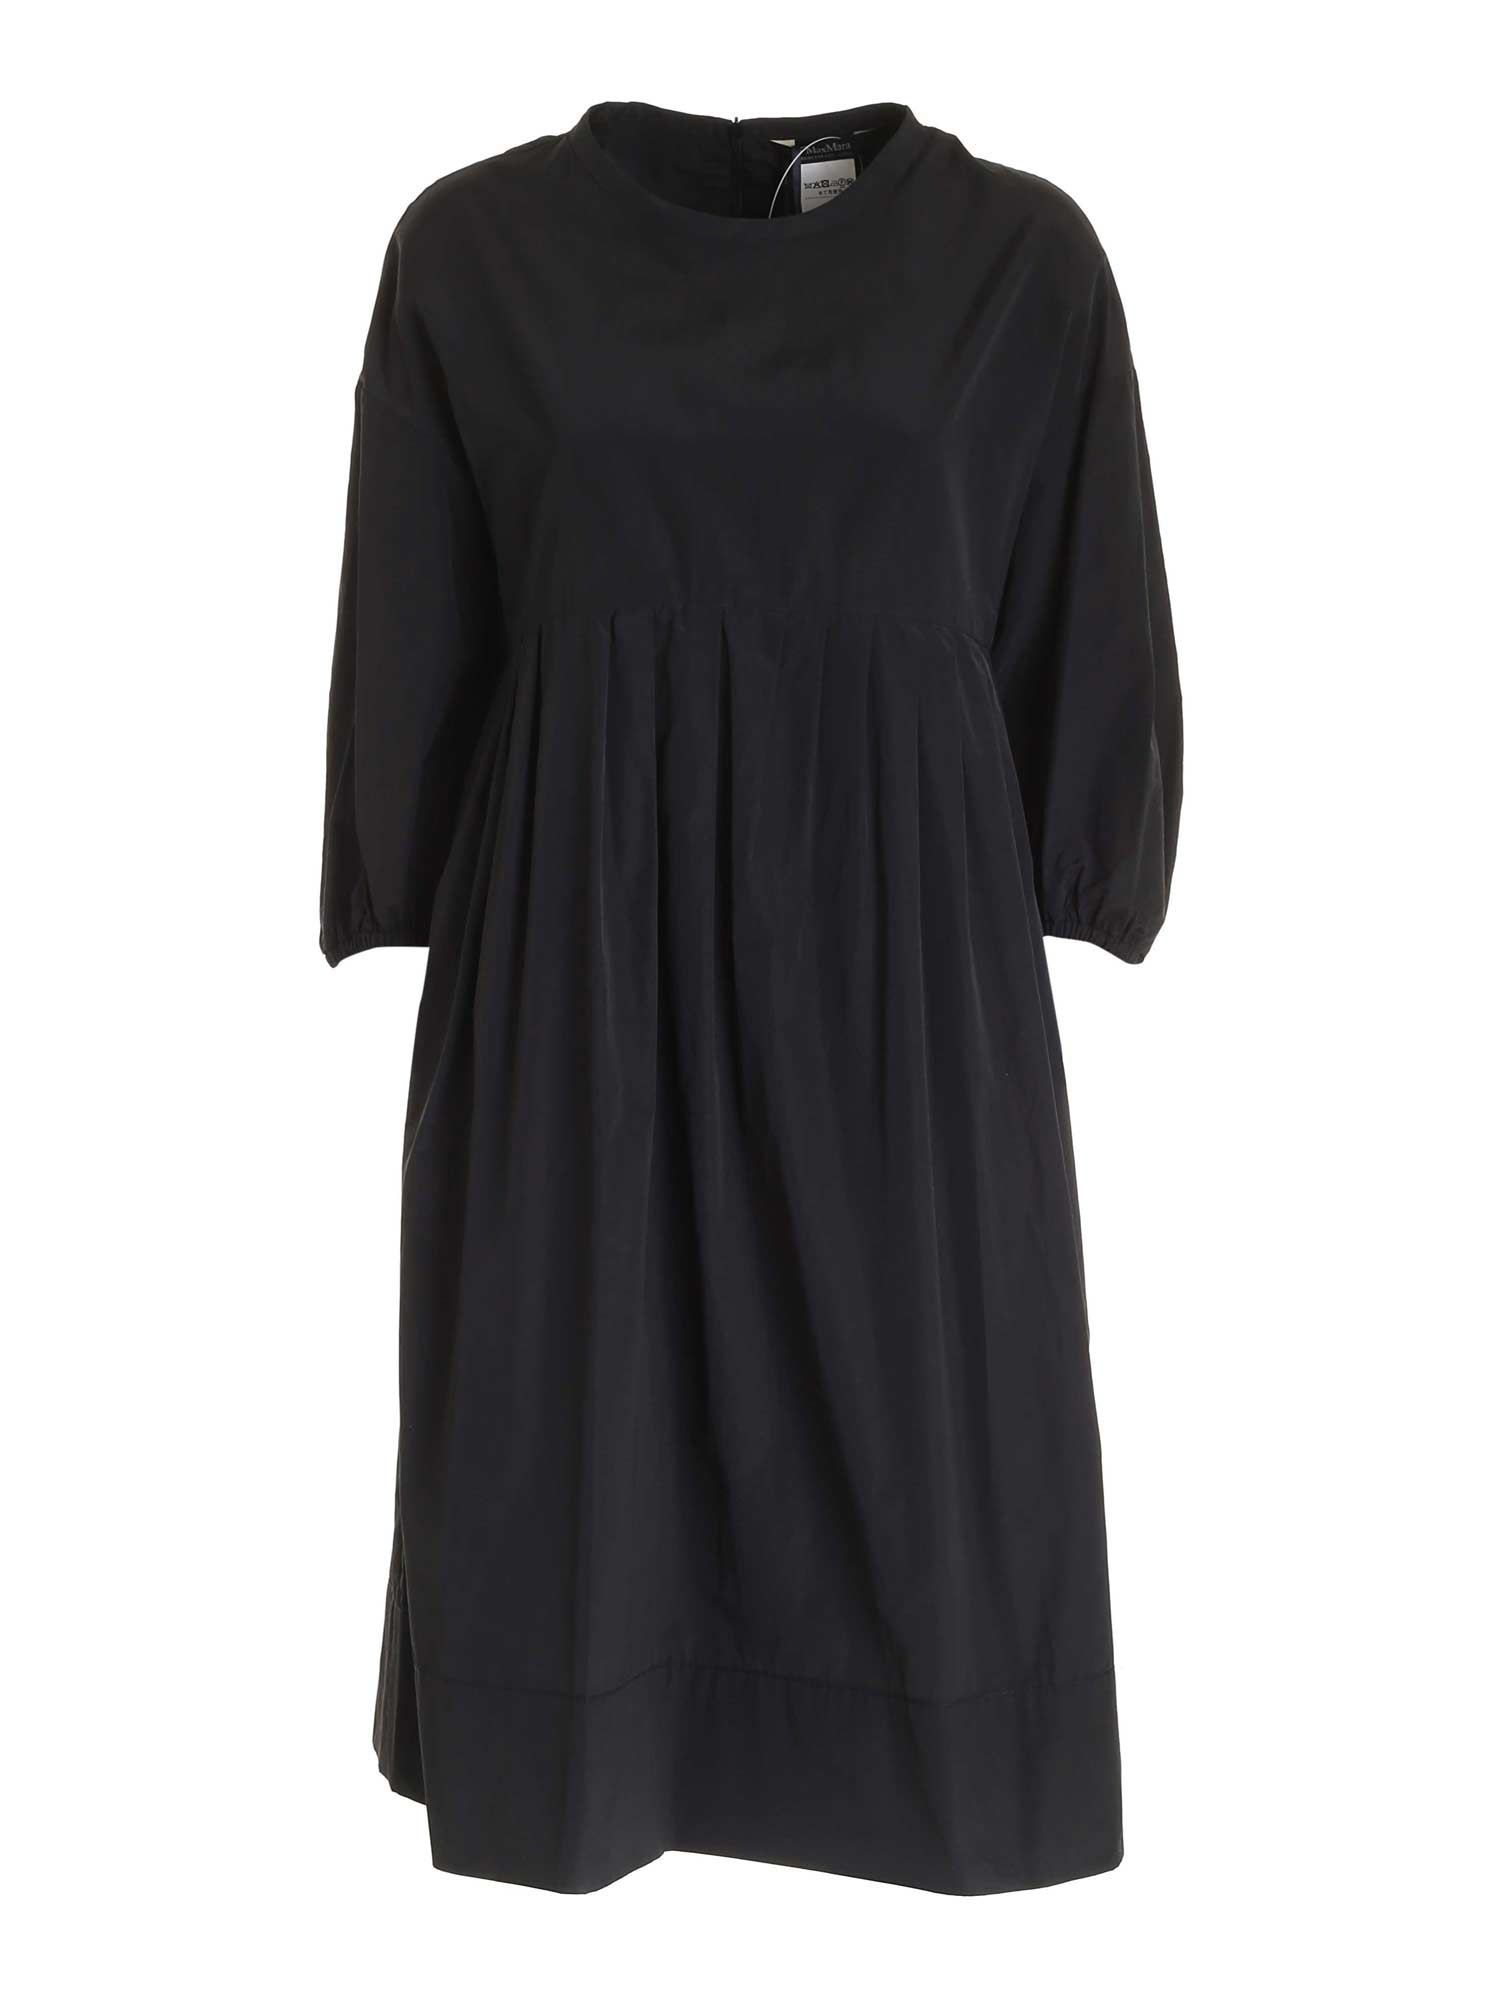 Max Mara Dresses ESOTICO DRESS IN BLACK